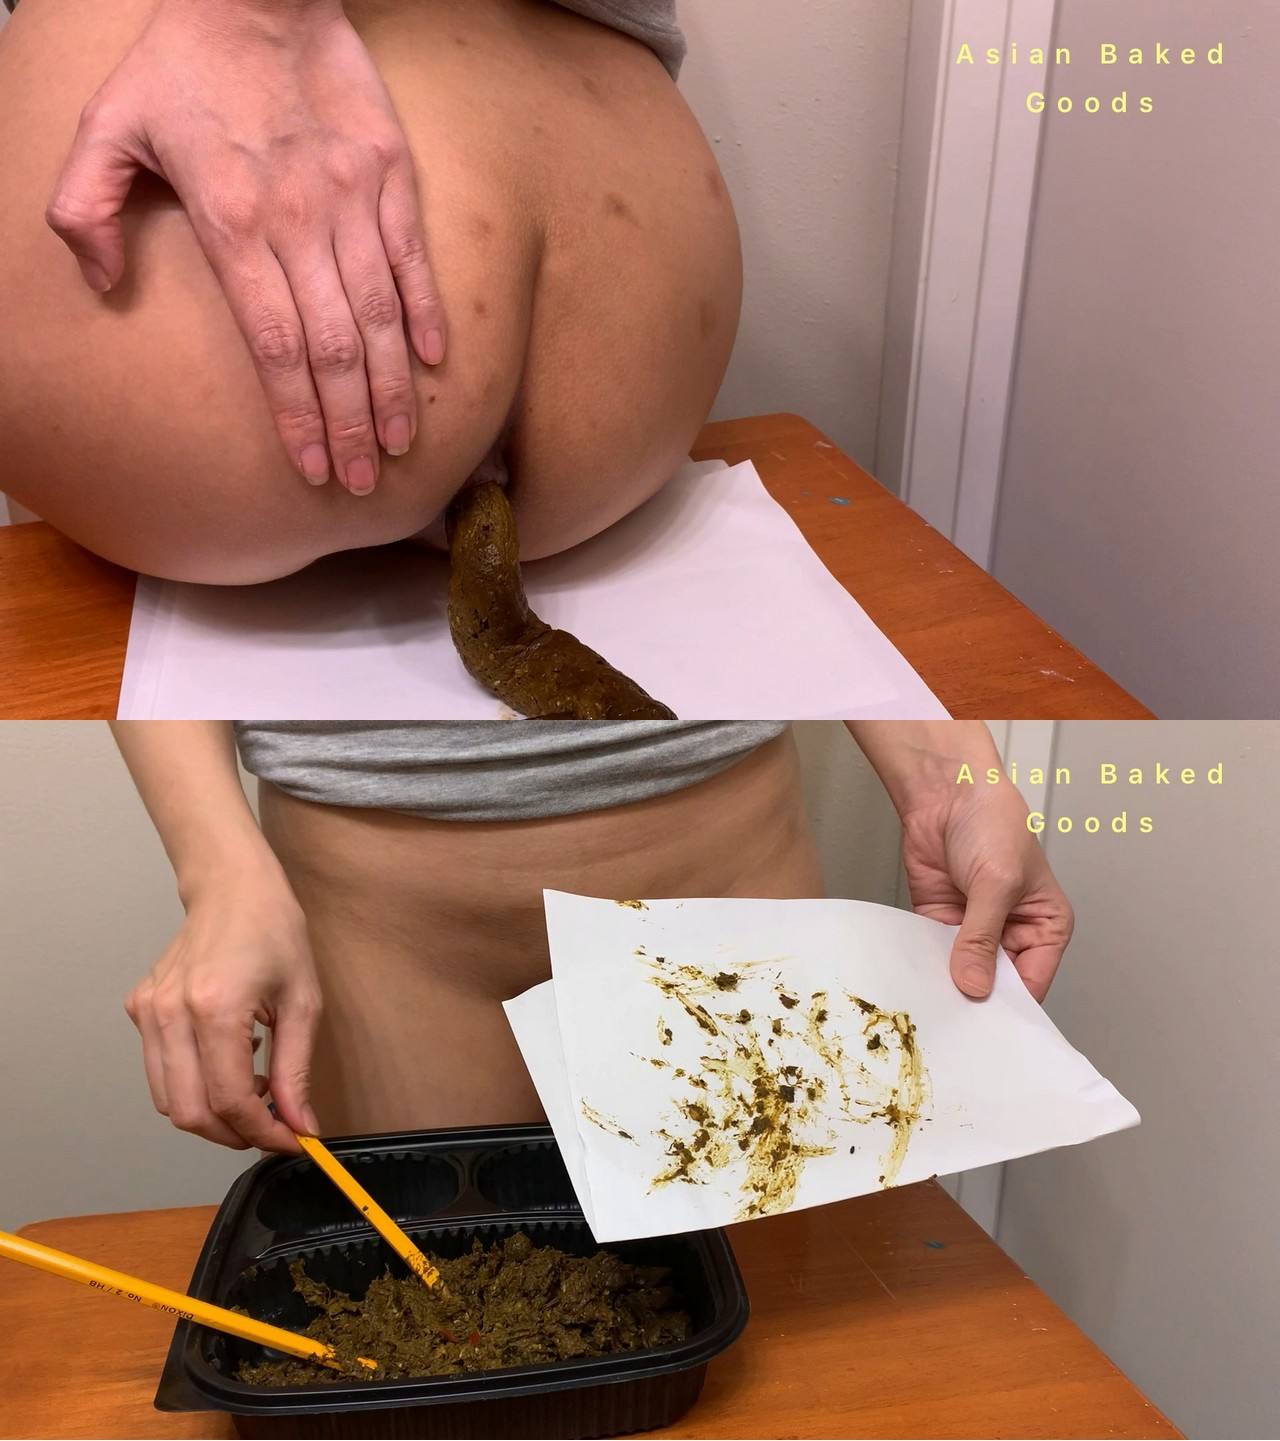 Marinayam19 starring in video Congrats grad, and great work! ($18.99 ScatShop) – Pissing